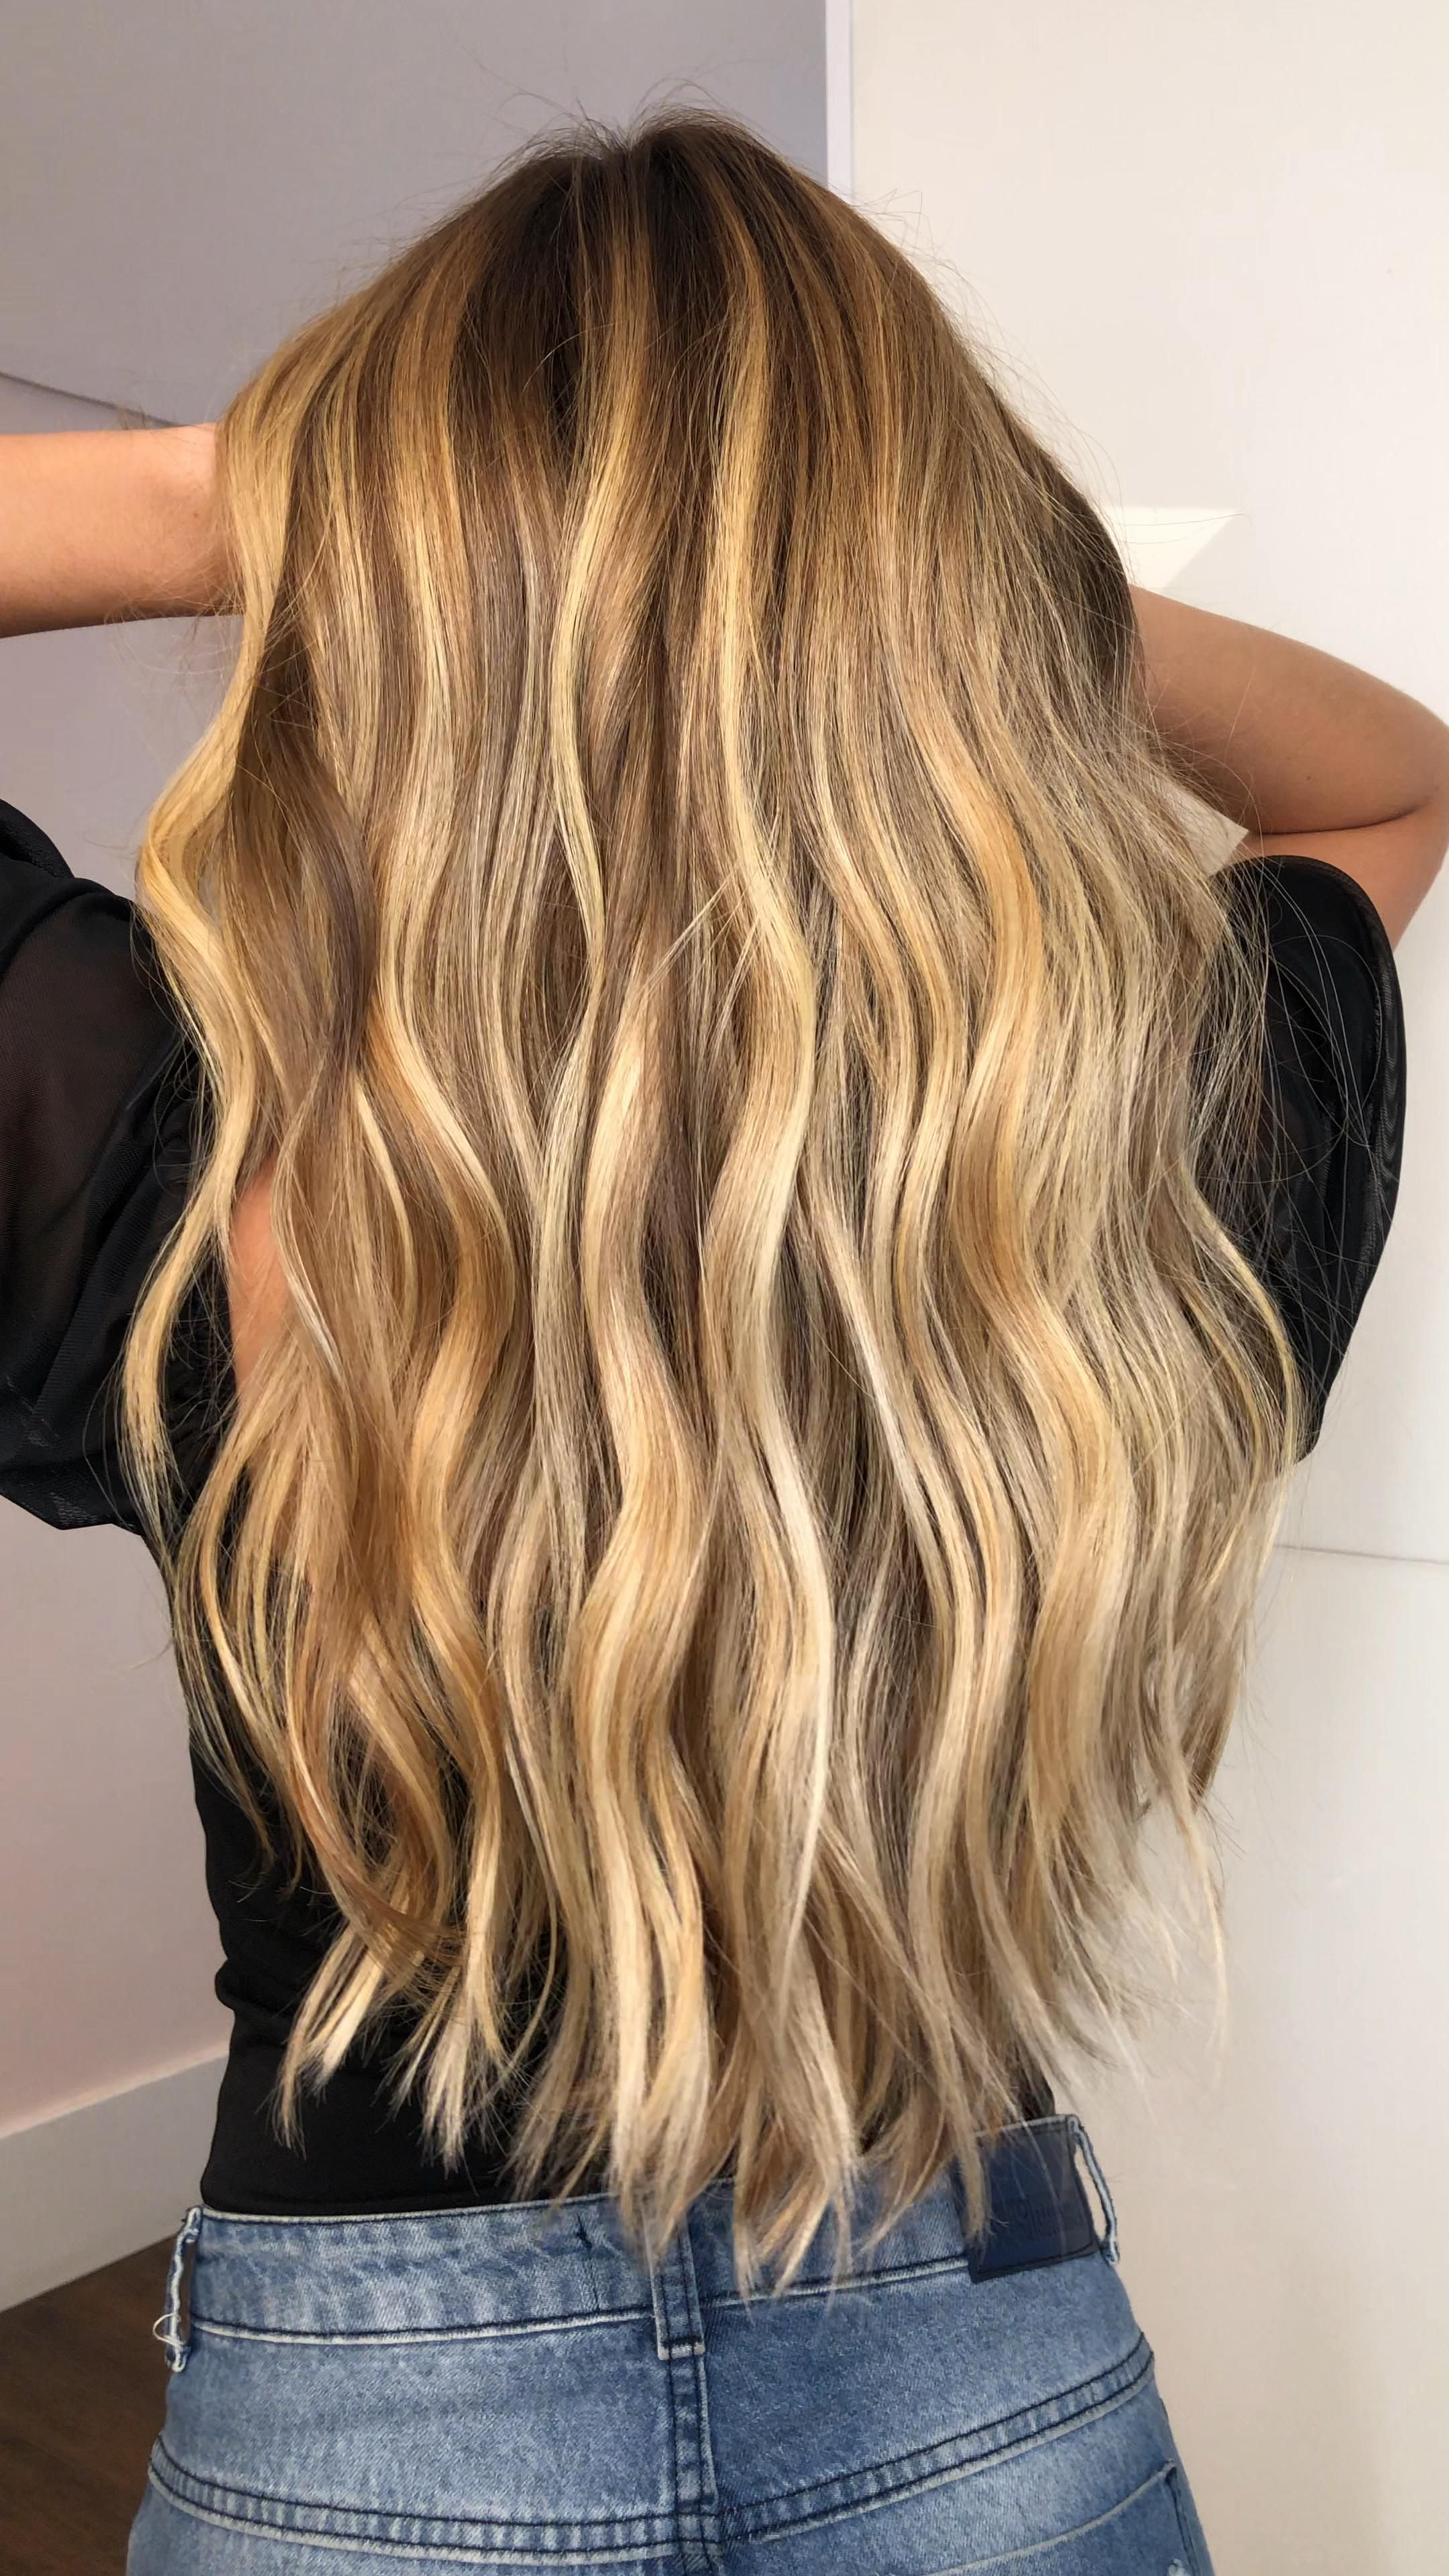 Lace Front Wigs Brown Wigs Blonde Wigs Blonde Anime Wig Platinum Blond Hair Wigs For Black Women